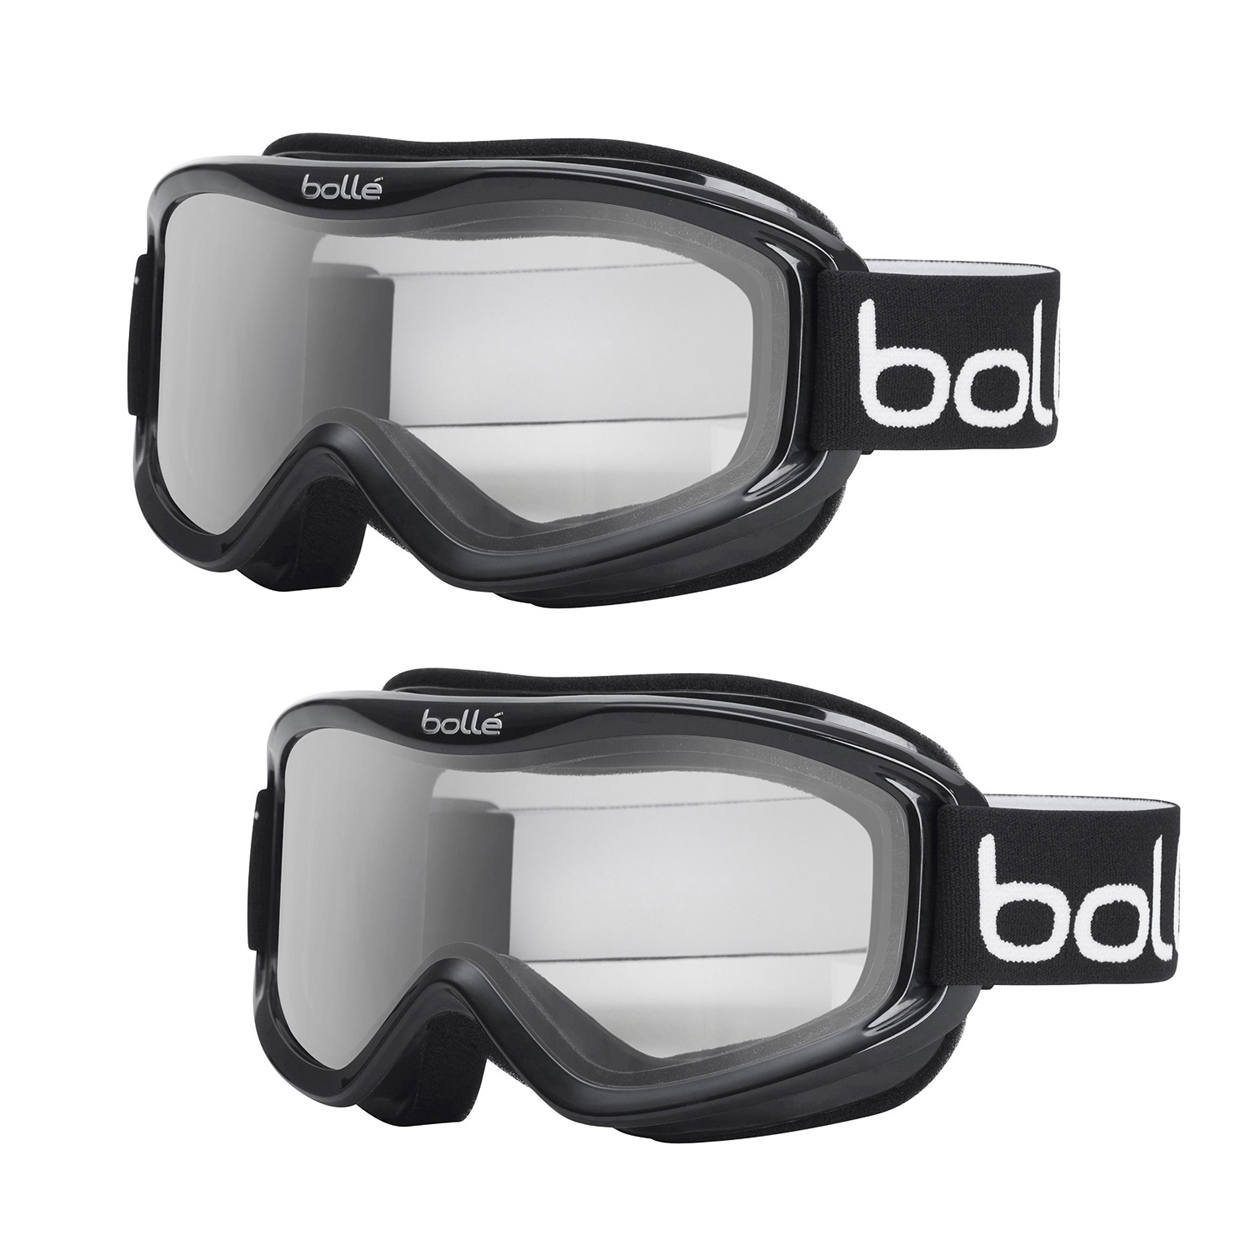 Bolle�Mojo Ski Goggles with Shiny Black Frame and Clear Lens (2-Pack) by Bolle